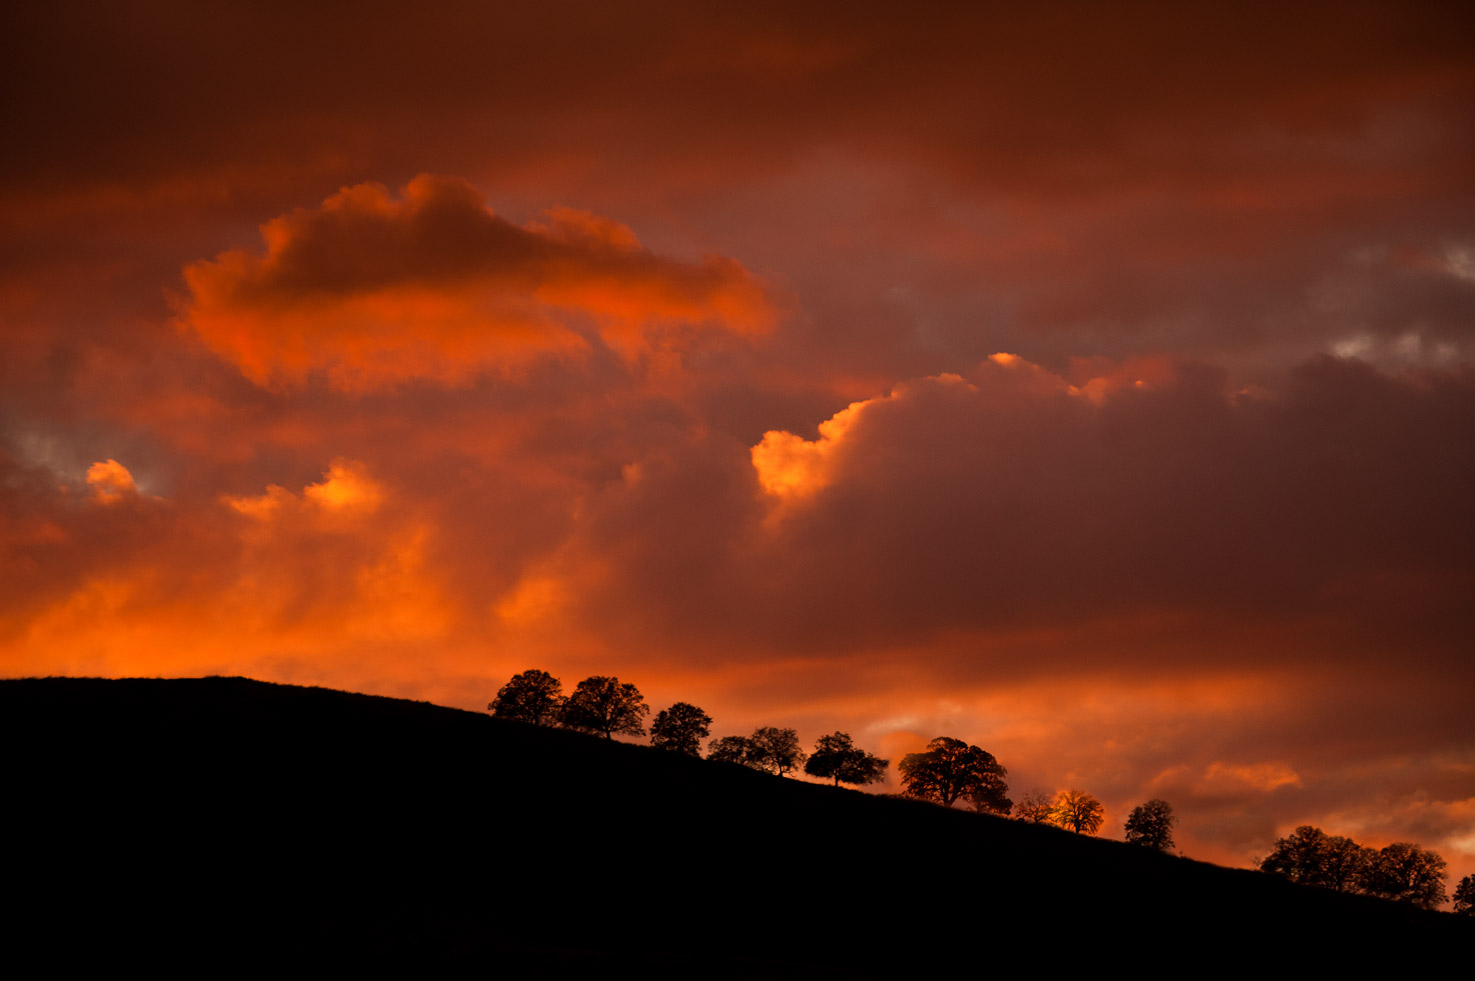 Deep sunset colors in the sky behind a silhouetted hillside in Yokohl Valley, California